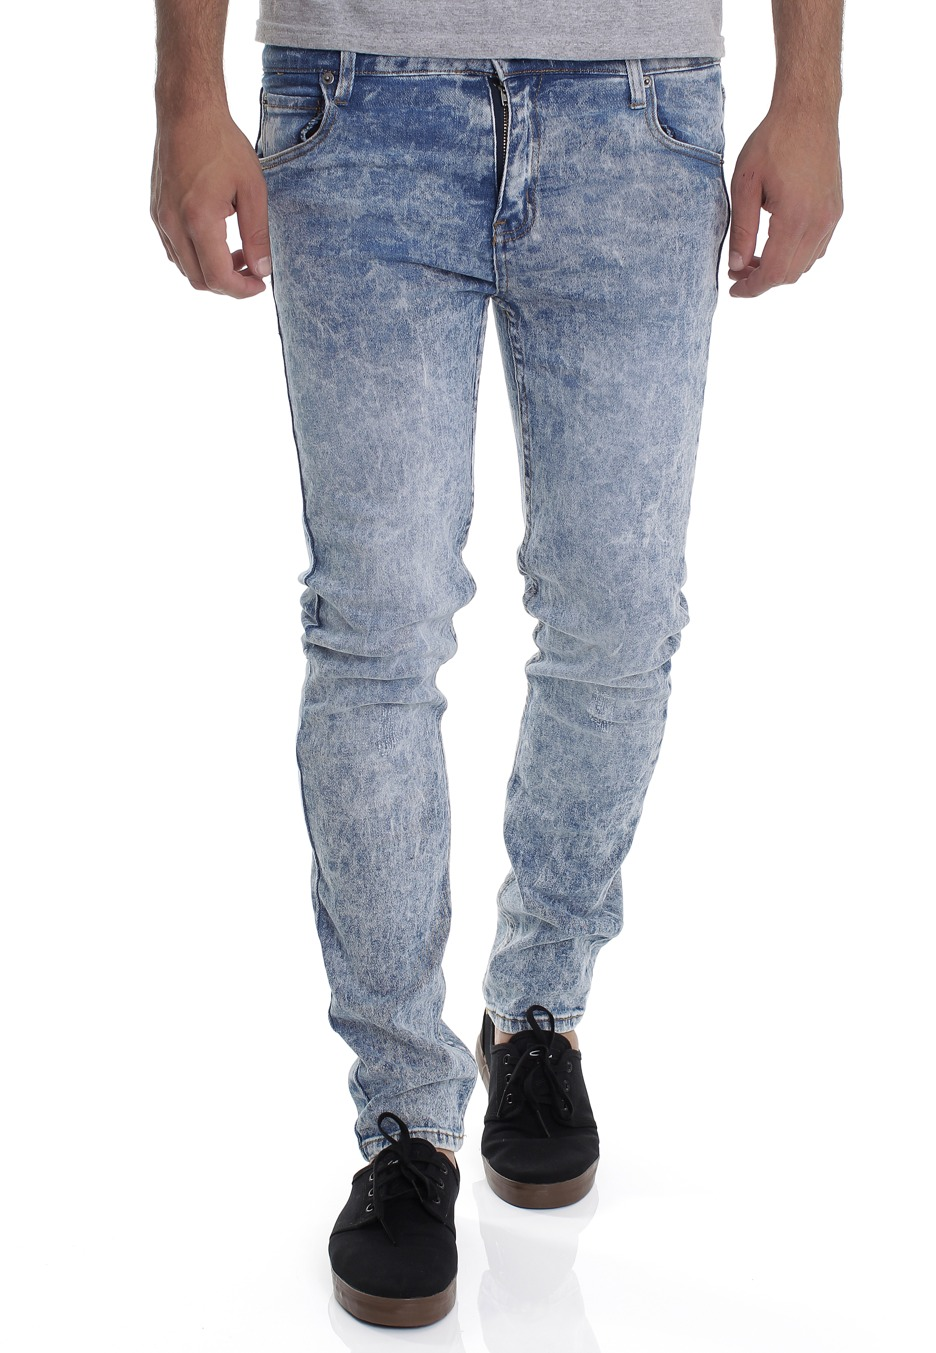 Where Can I Get Jeans For Cheap